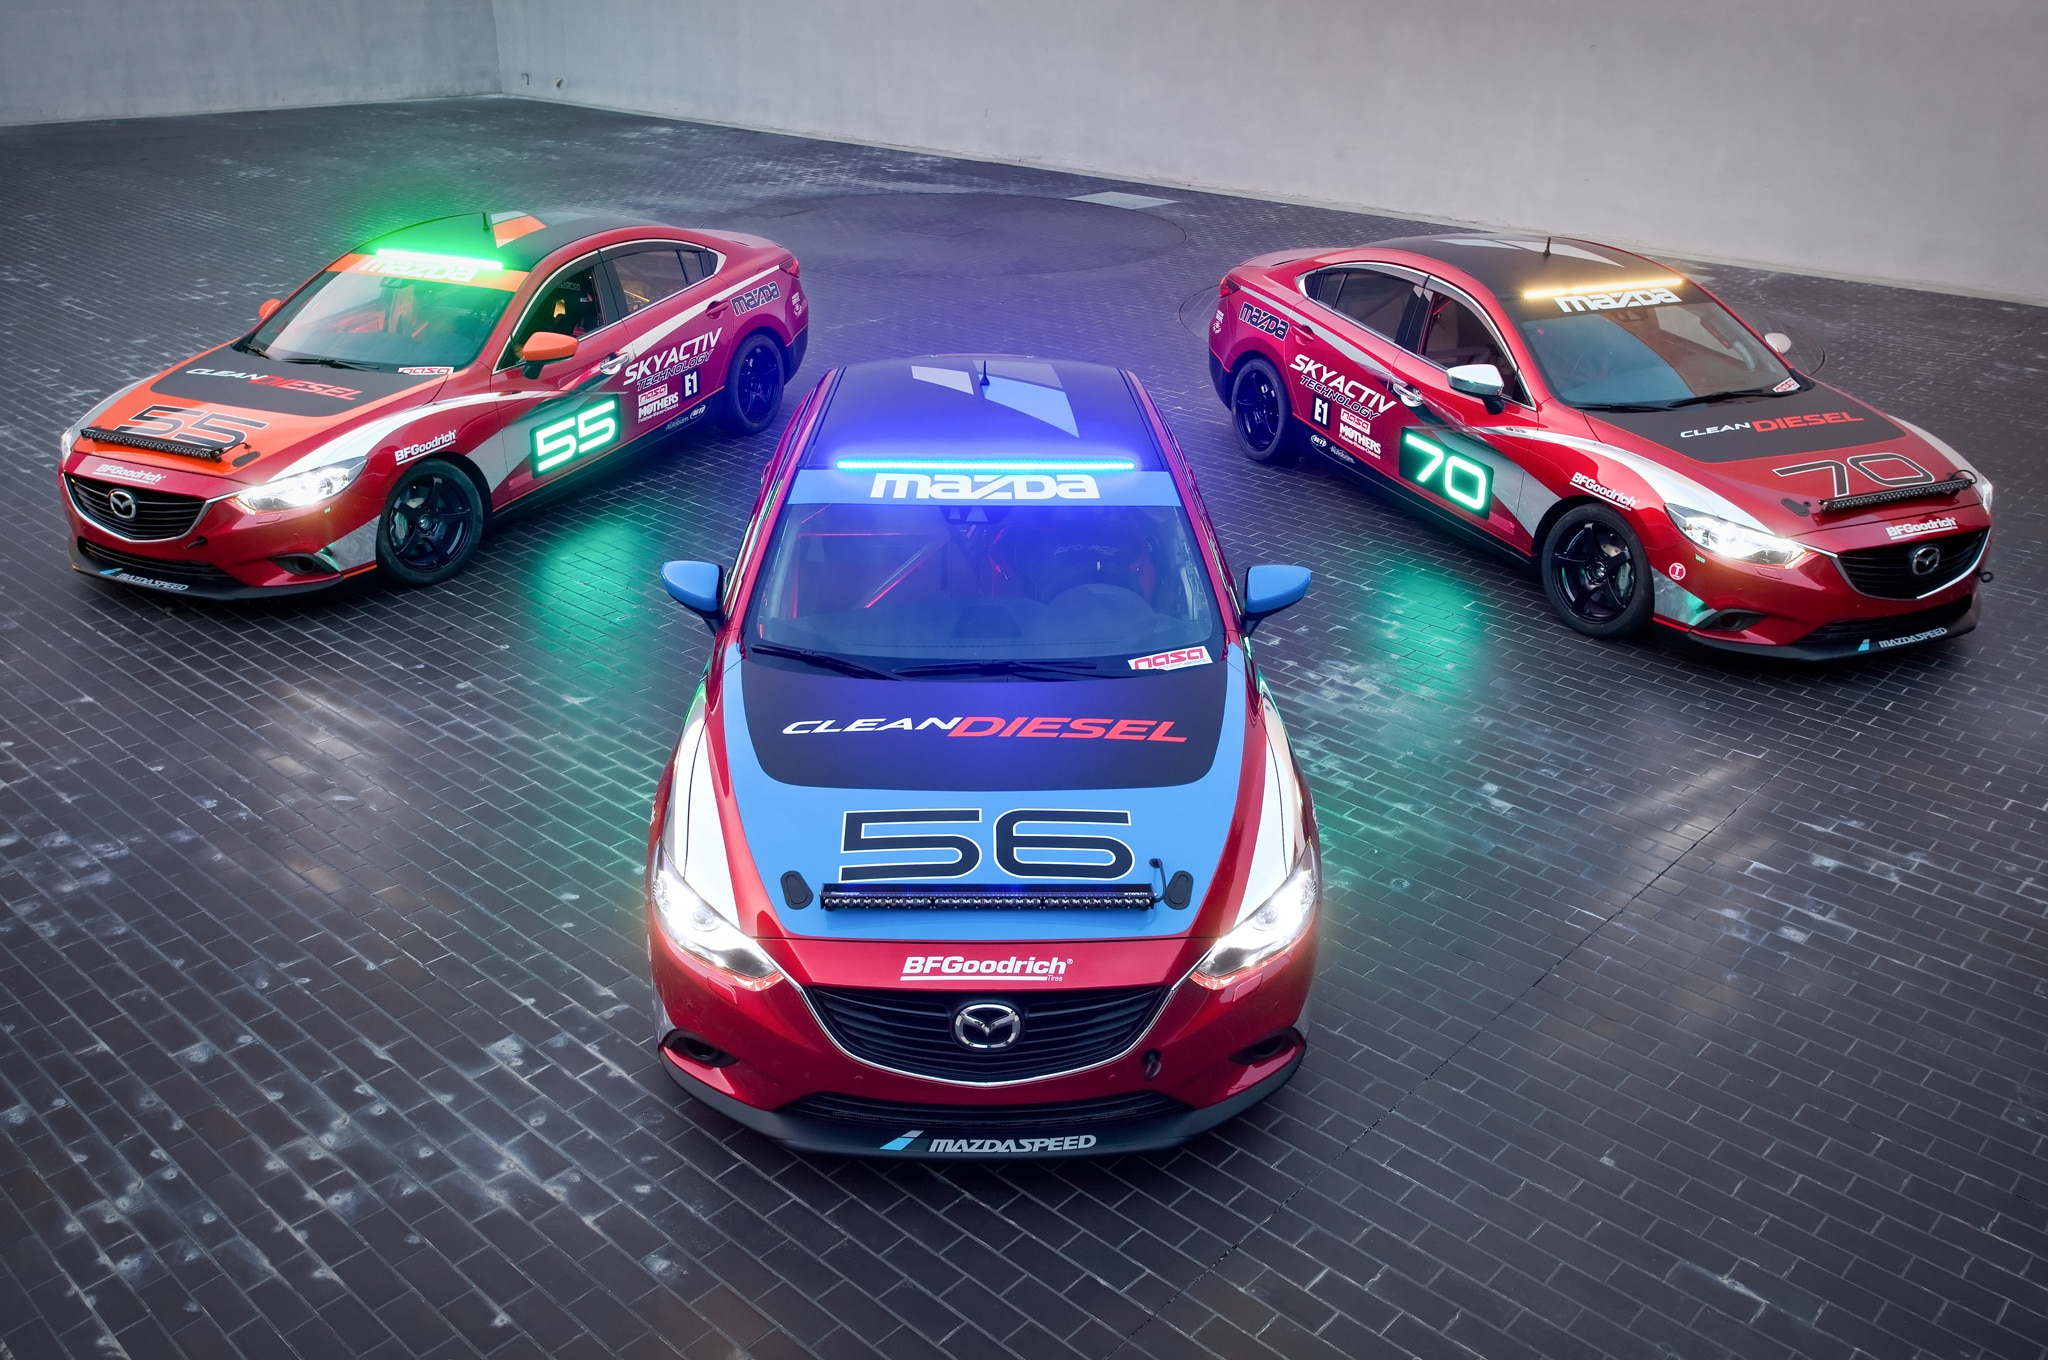 Mazda 6 Diesel Sedans To Race In 25 Hours Of Thunderhill